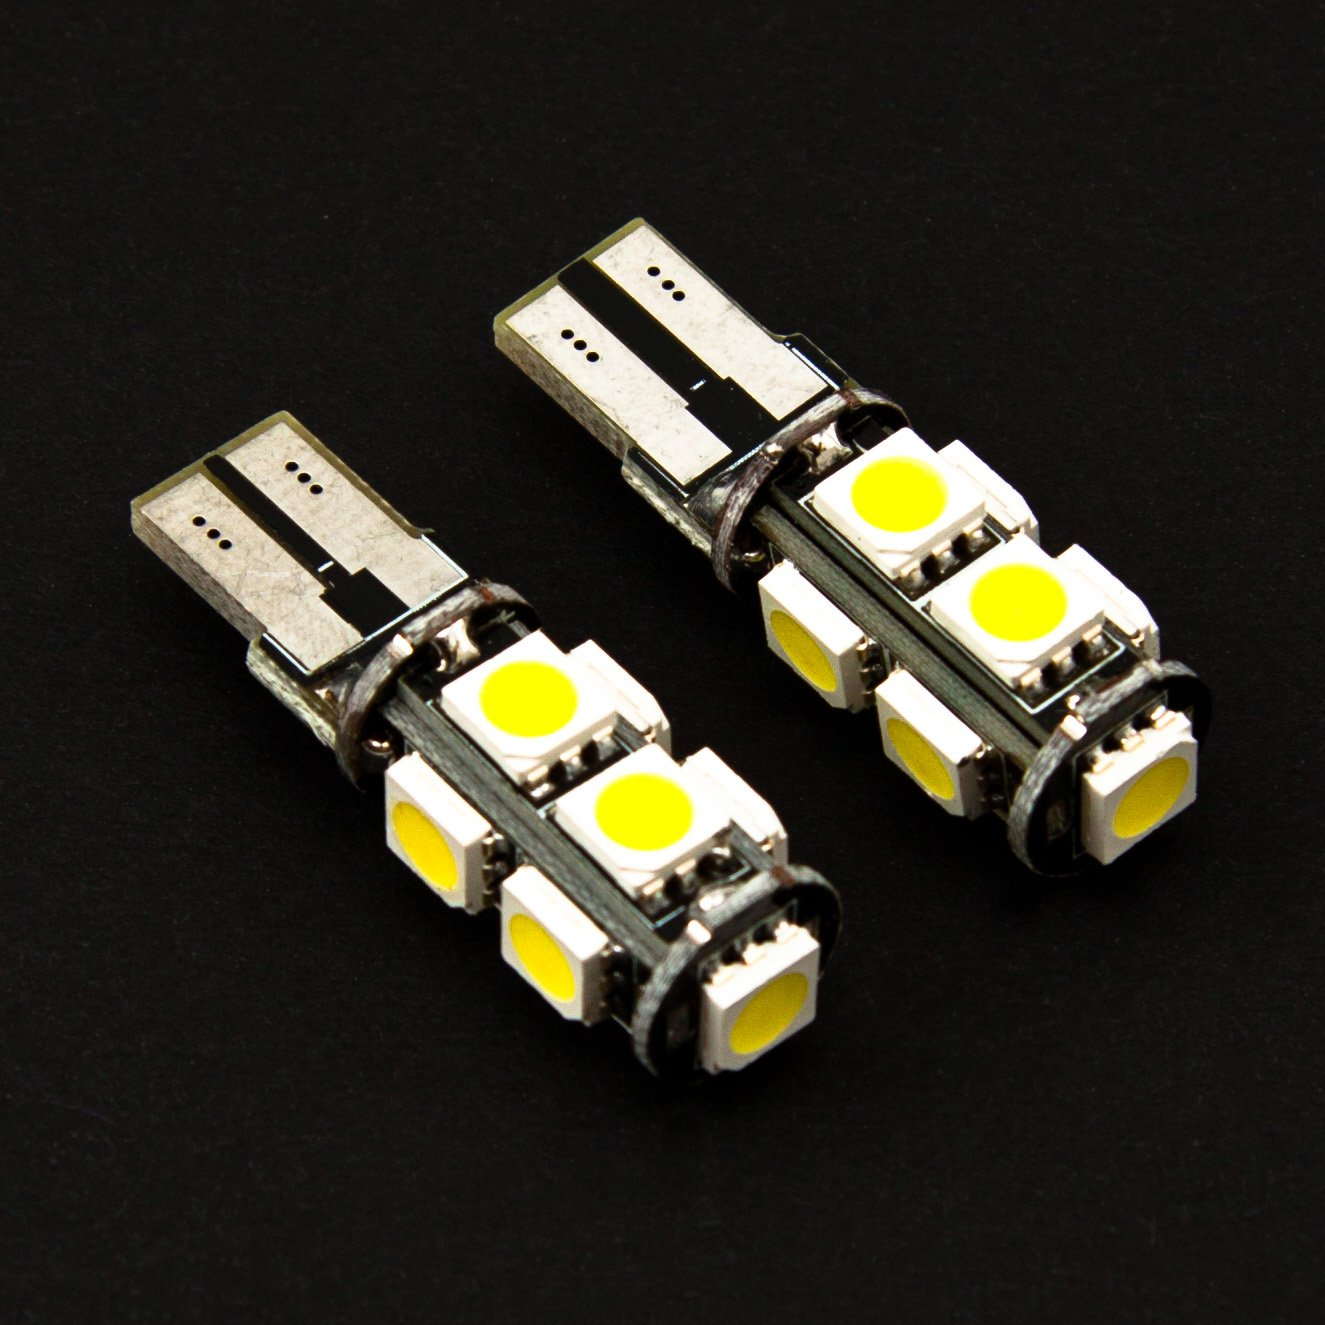 1x Citroen Berlingo Bright Xenon White 3SMD LED Canbus Number Plate Light Bulb